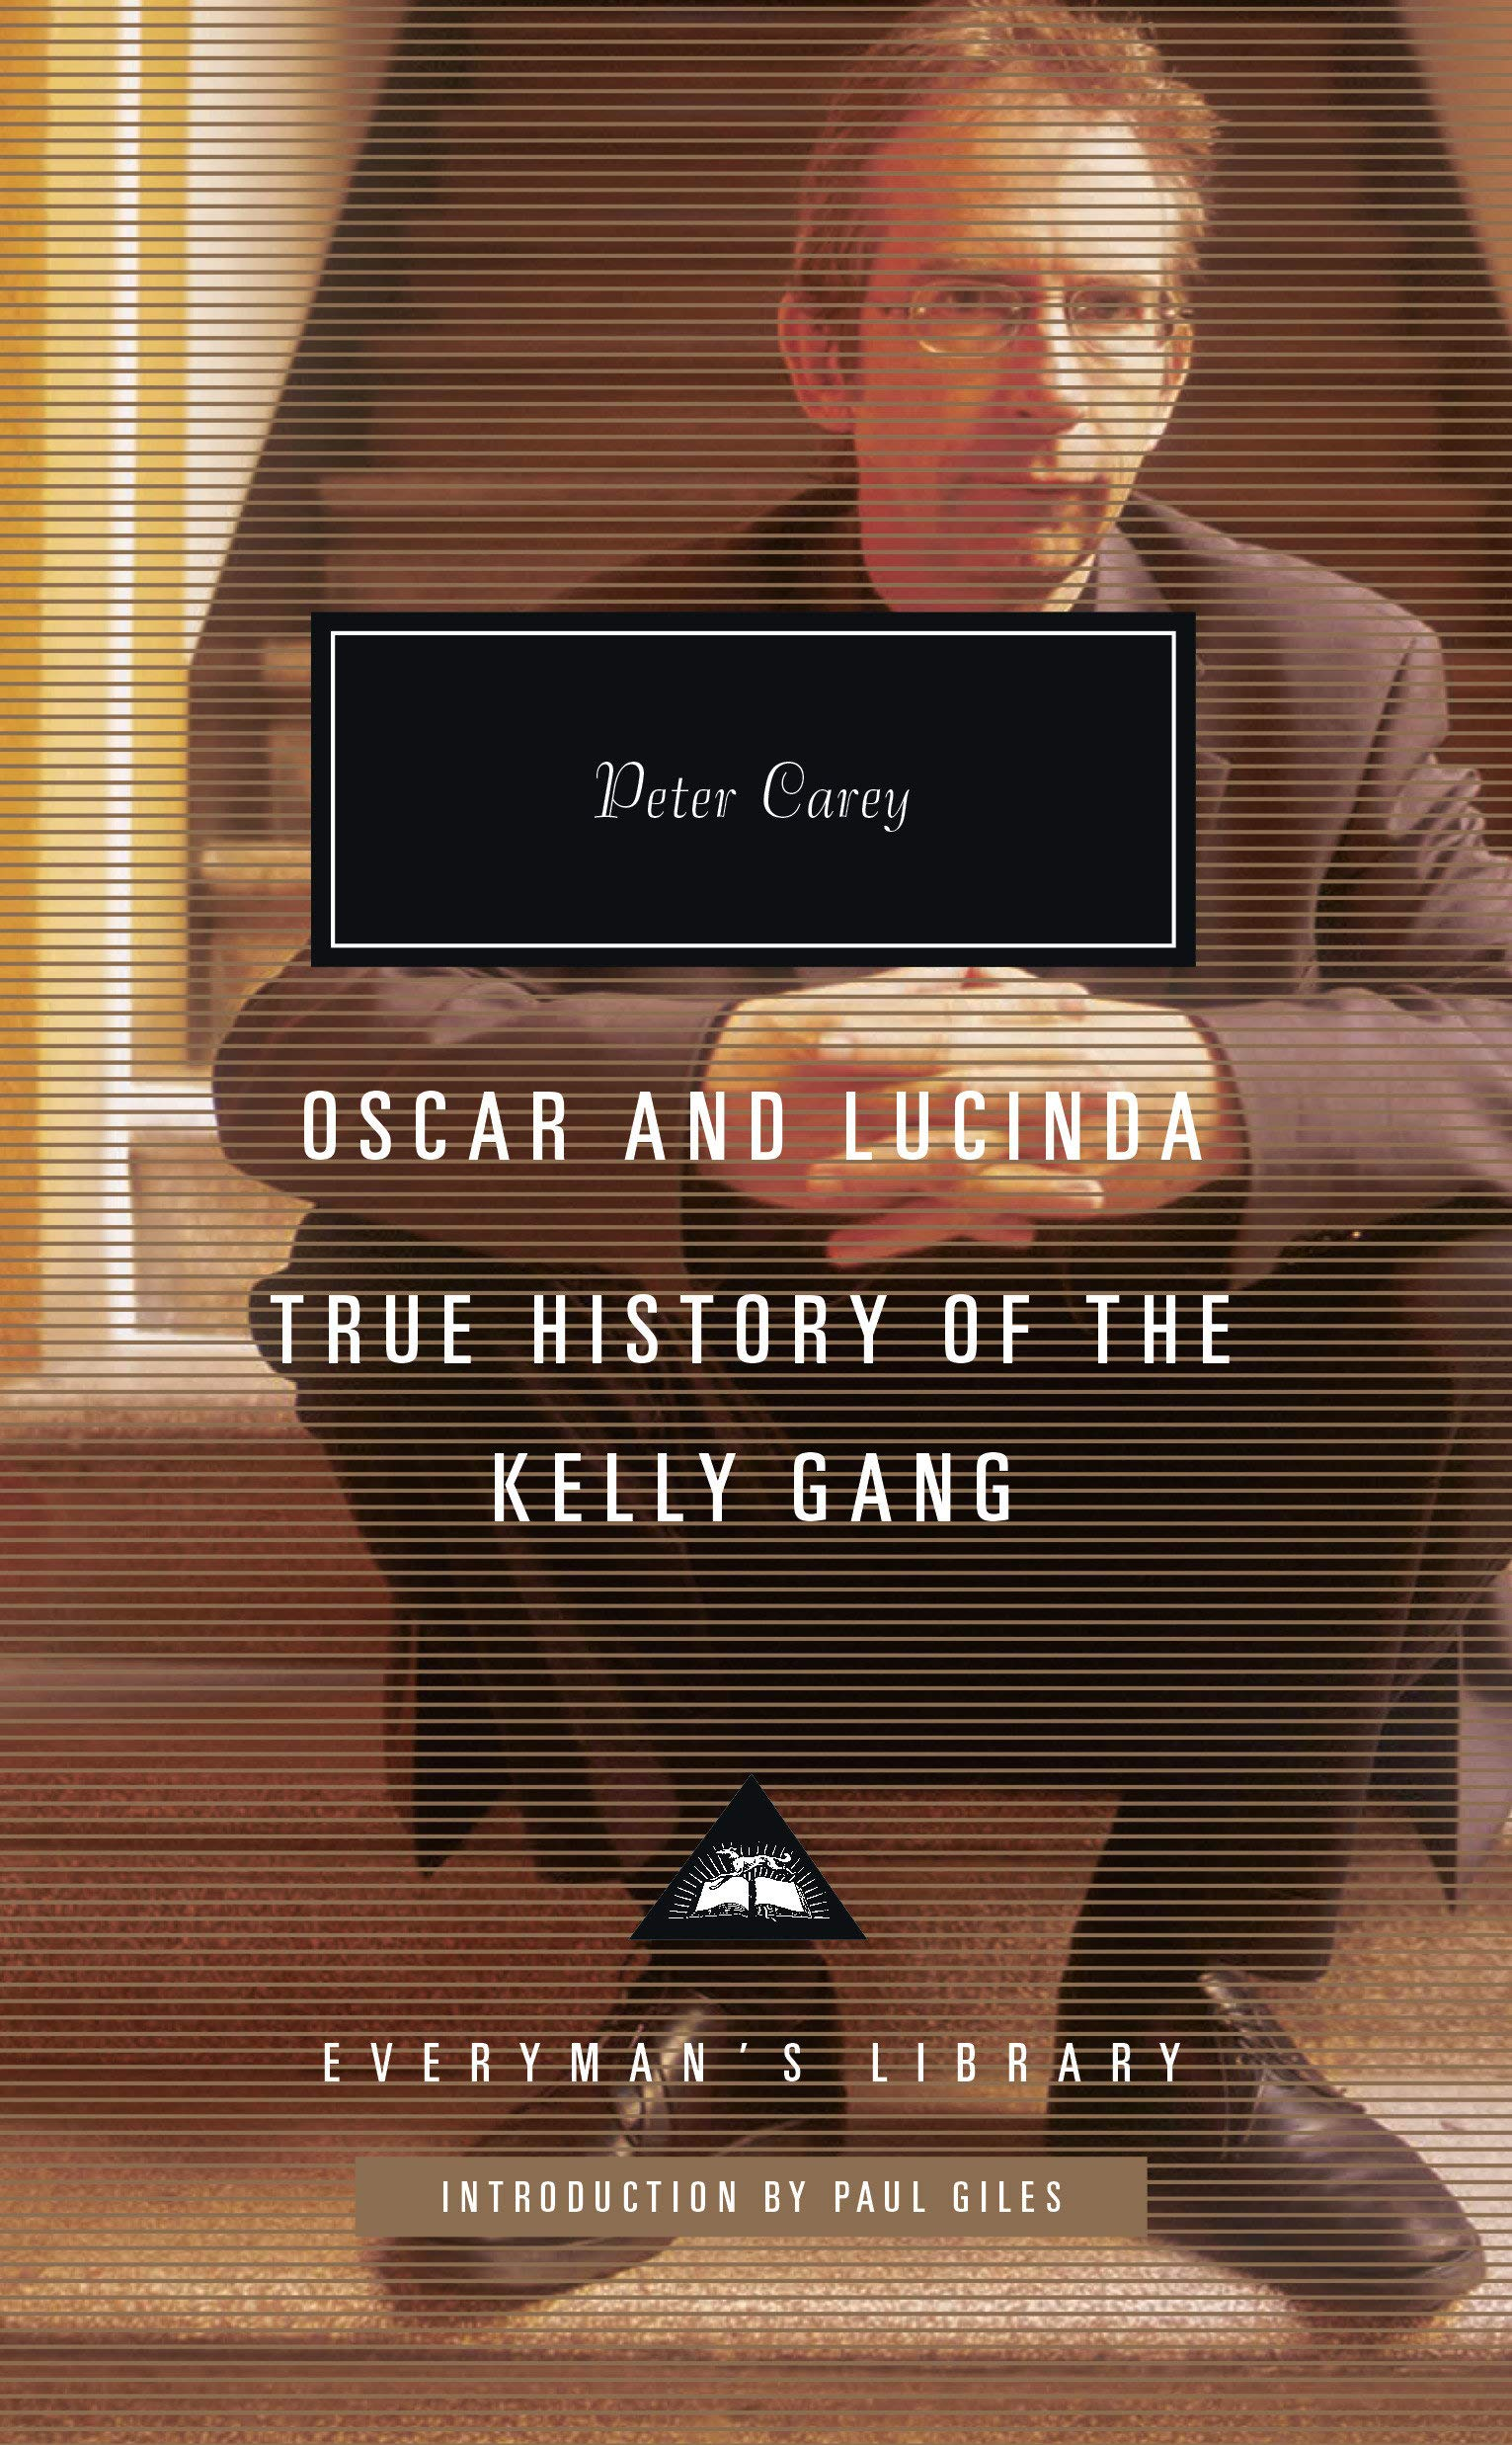 Oscar and Lucinda, True History of the Kelly Gang (Everyman's Library Contemporary Classics Series)